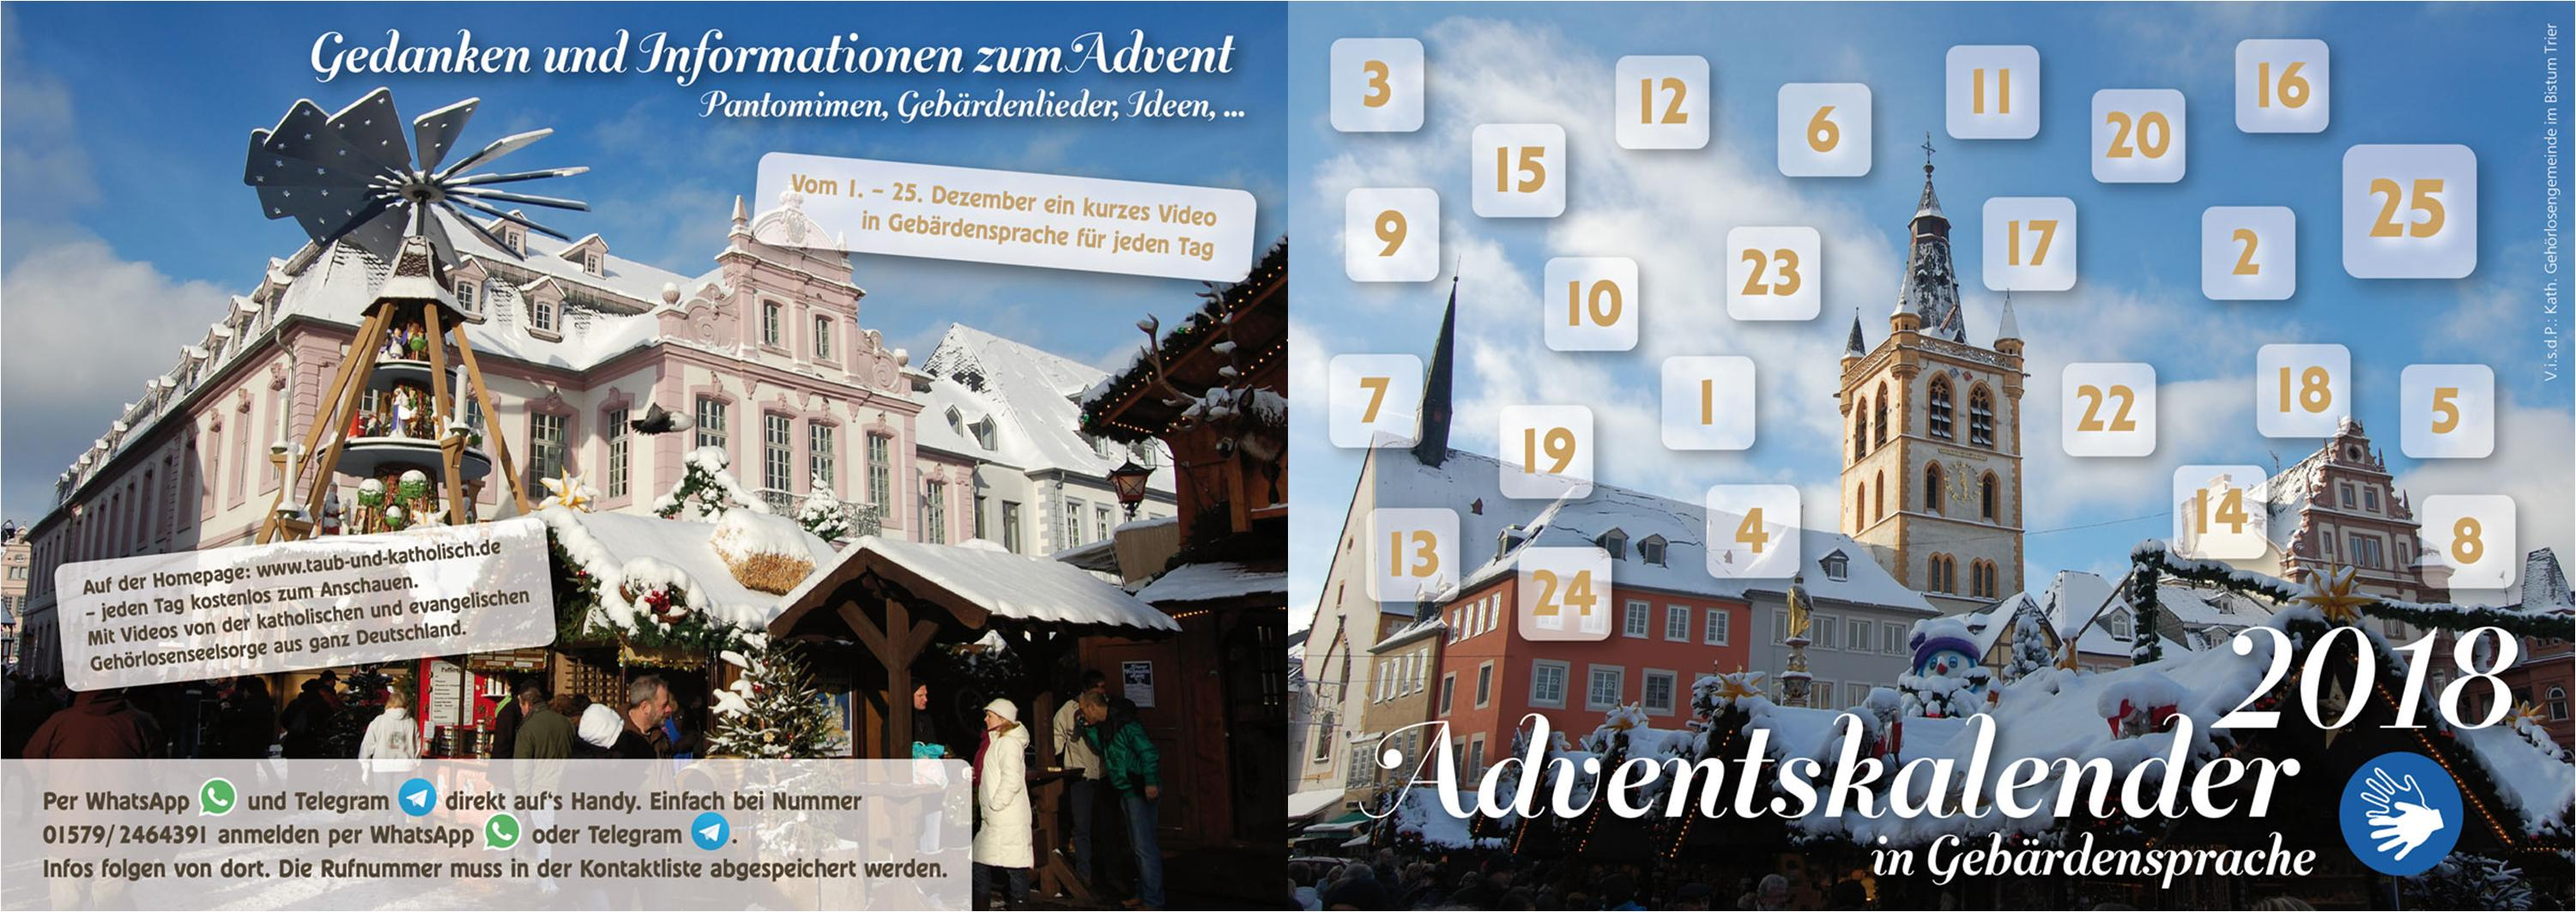 DGS-Adventskalender